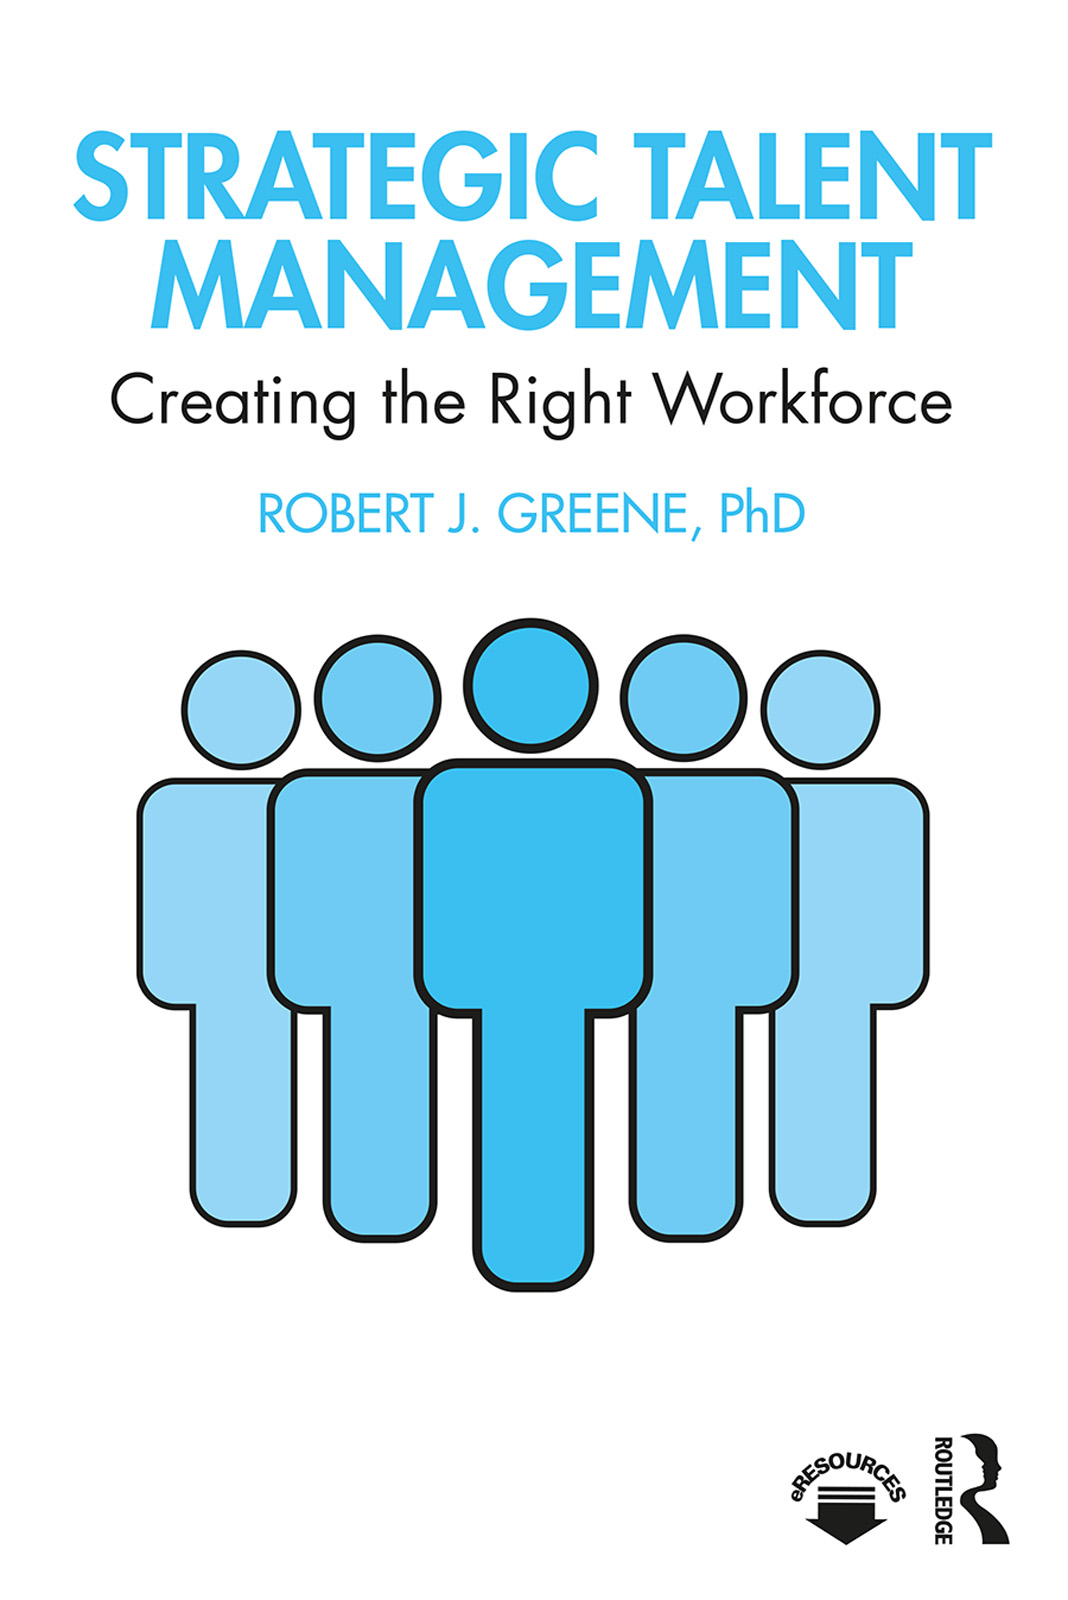 Strategic Talent Management: Creating the Right Workforce book cover